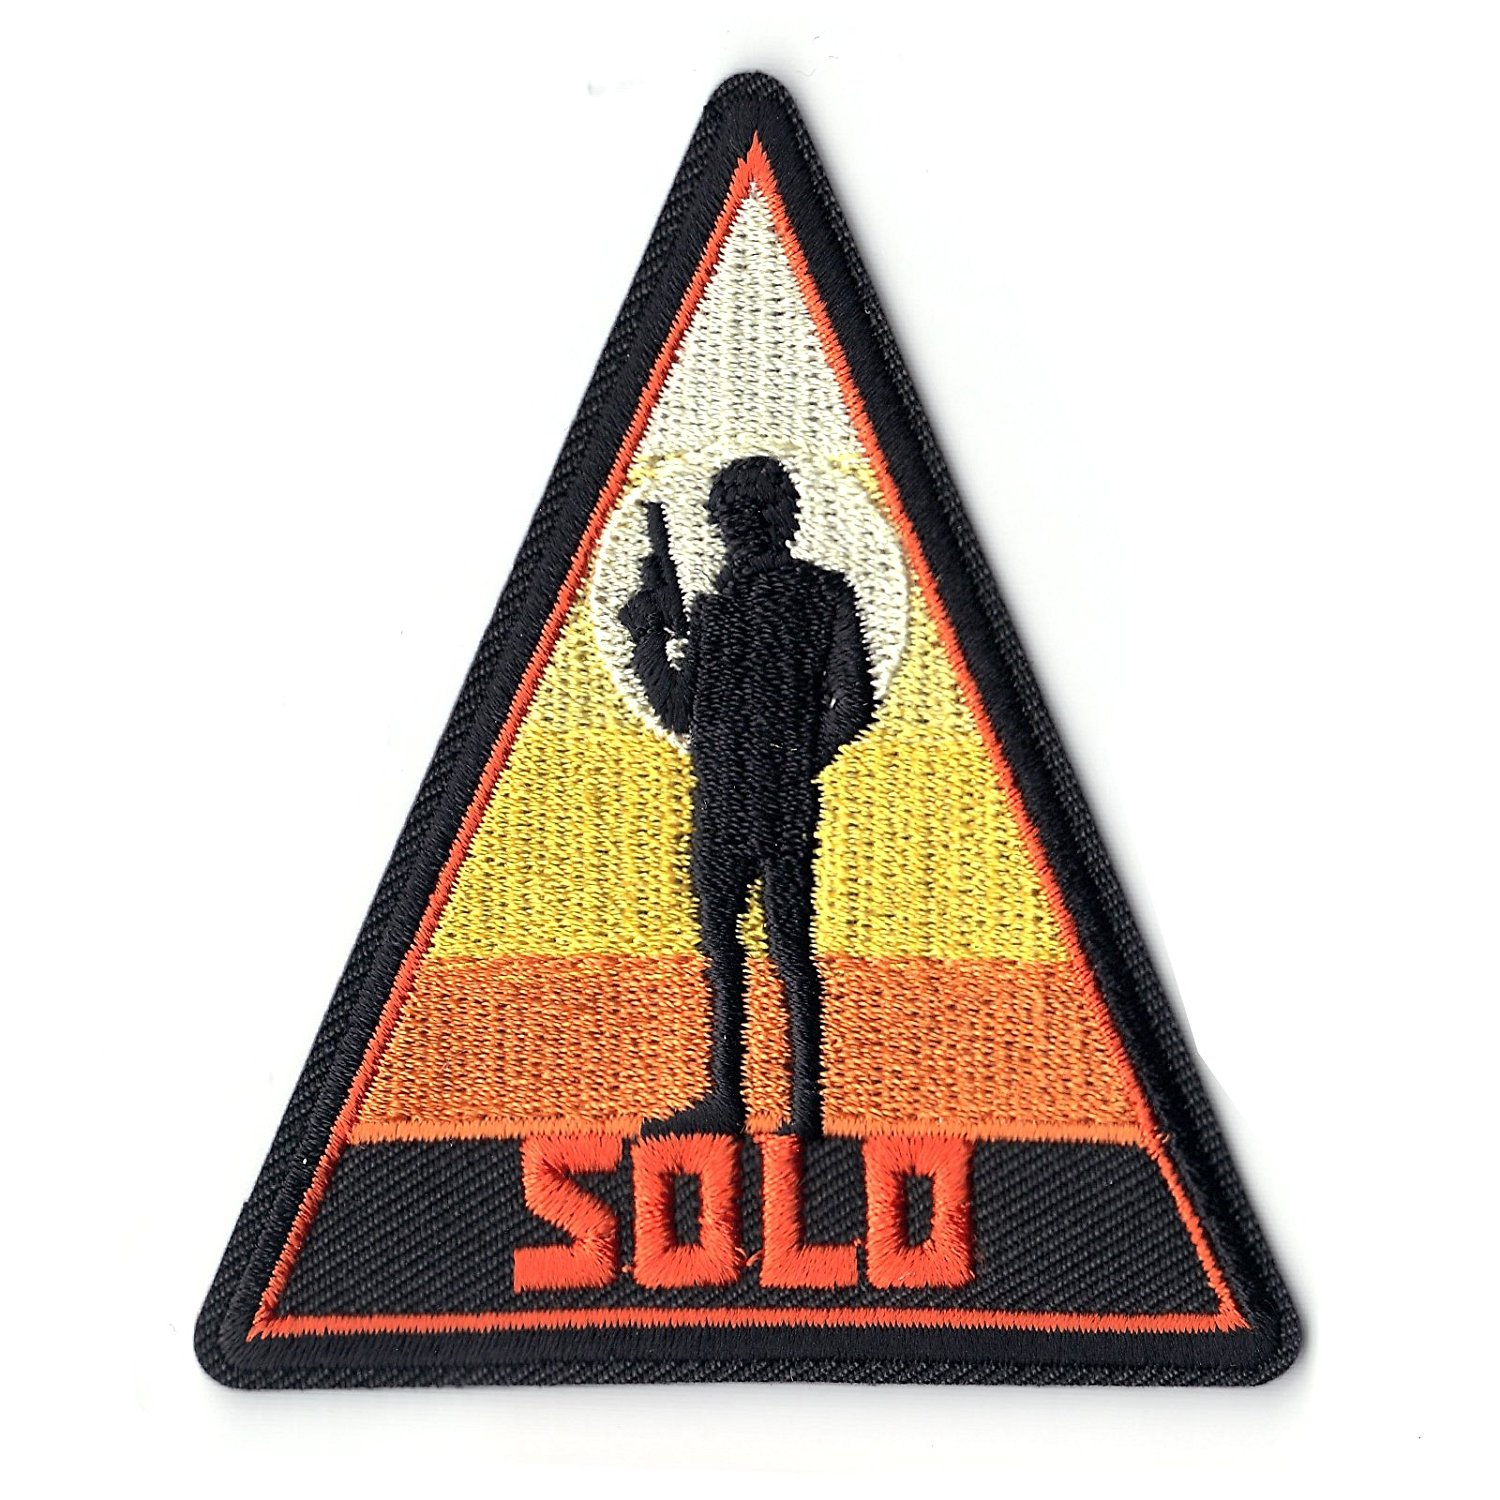 Solo: ASWS Han Solo Sunset Embroidered Iron-On Patch 2